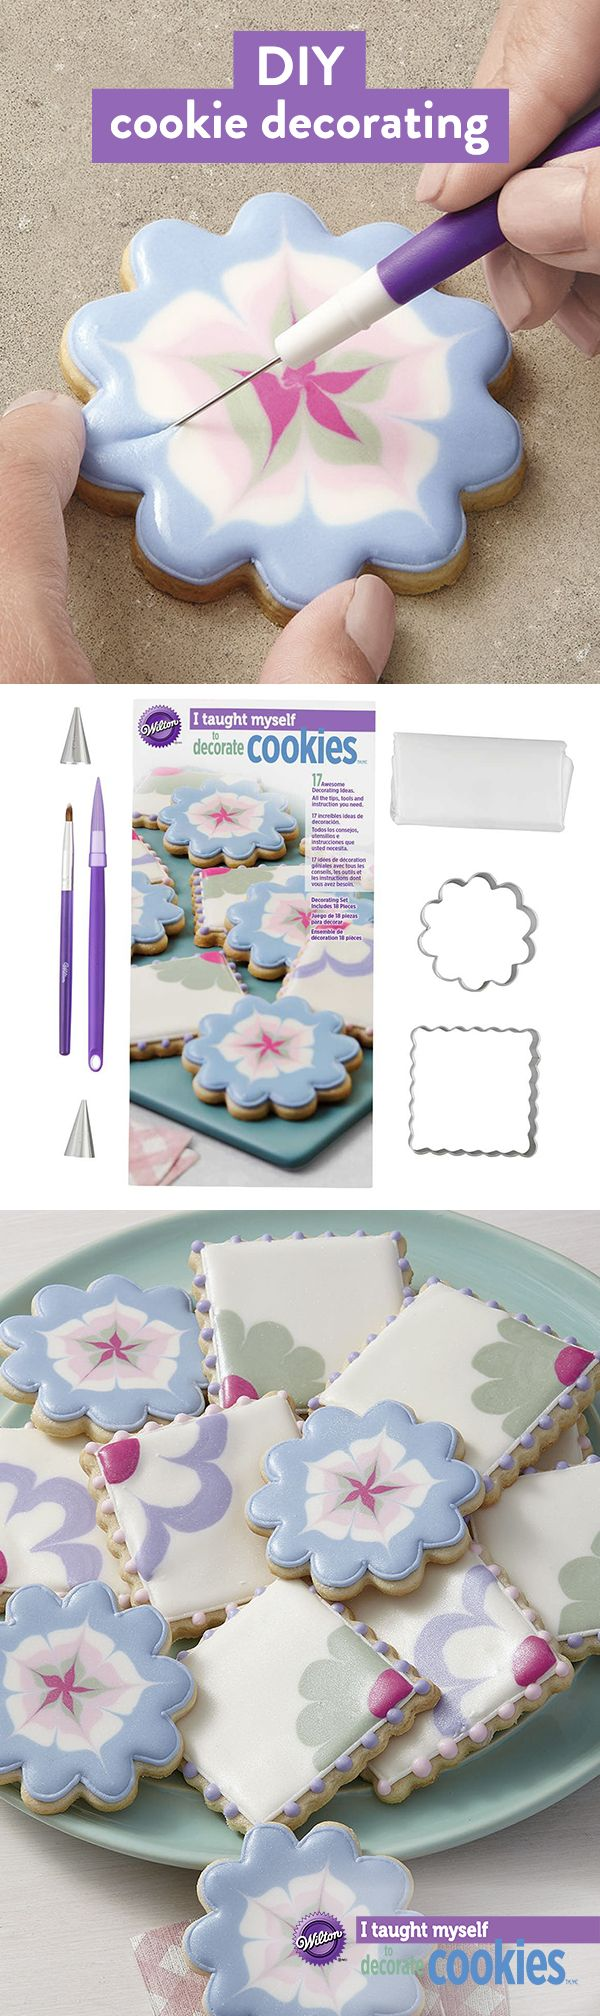 Learn How To Decorate Cookies With Royal Icing Using This Easy Diy Set The I